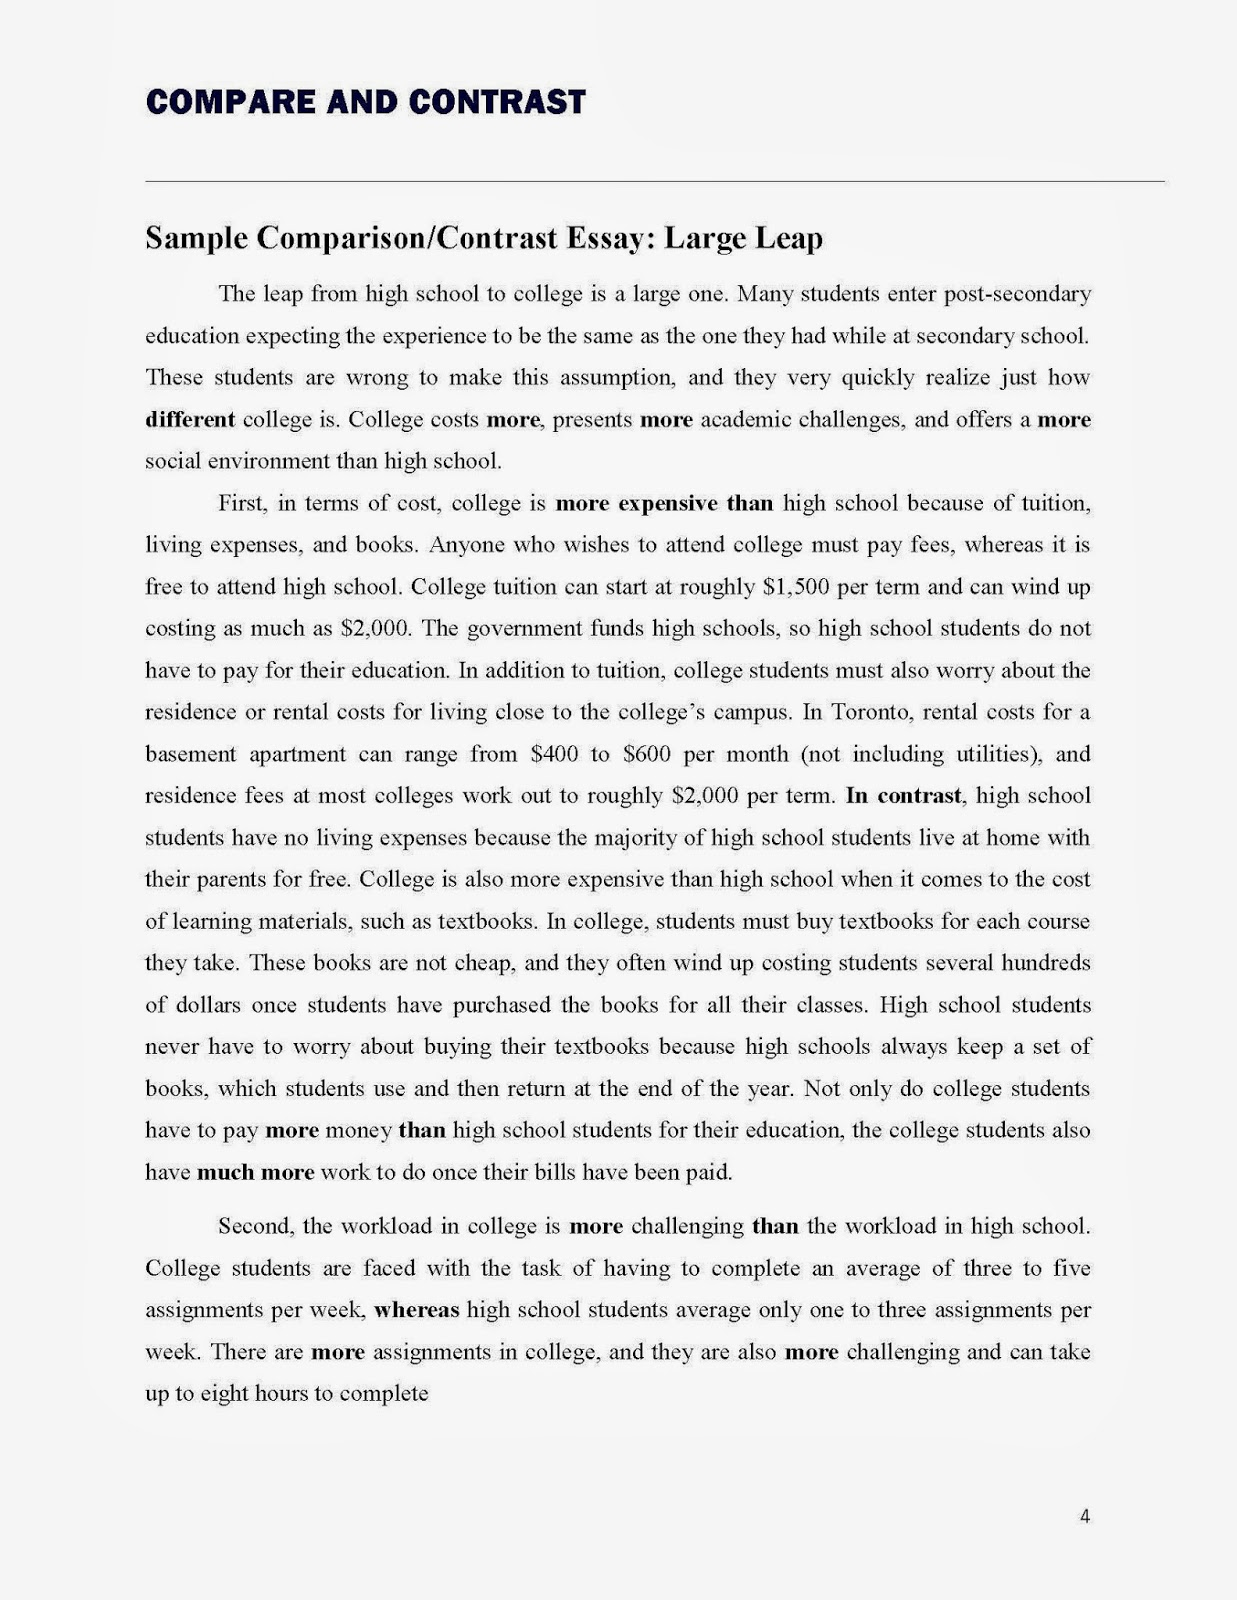 Essay On Cultural Diversity Compare Contrast Essay Prompts Compare Contrast Essay Writing Compare And Contrast  Essay Prompt Liao Ipnodns Rucompare Examples Of Essay In Literature also Marijuana Legalization Essays What To Write A Compare And Contrast Essay On Compare Contrast Essay  Essay On Oprah Winfrey